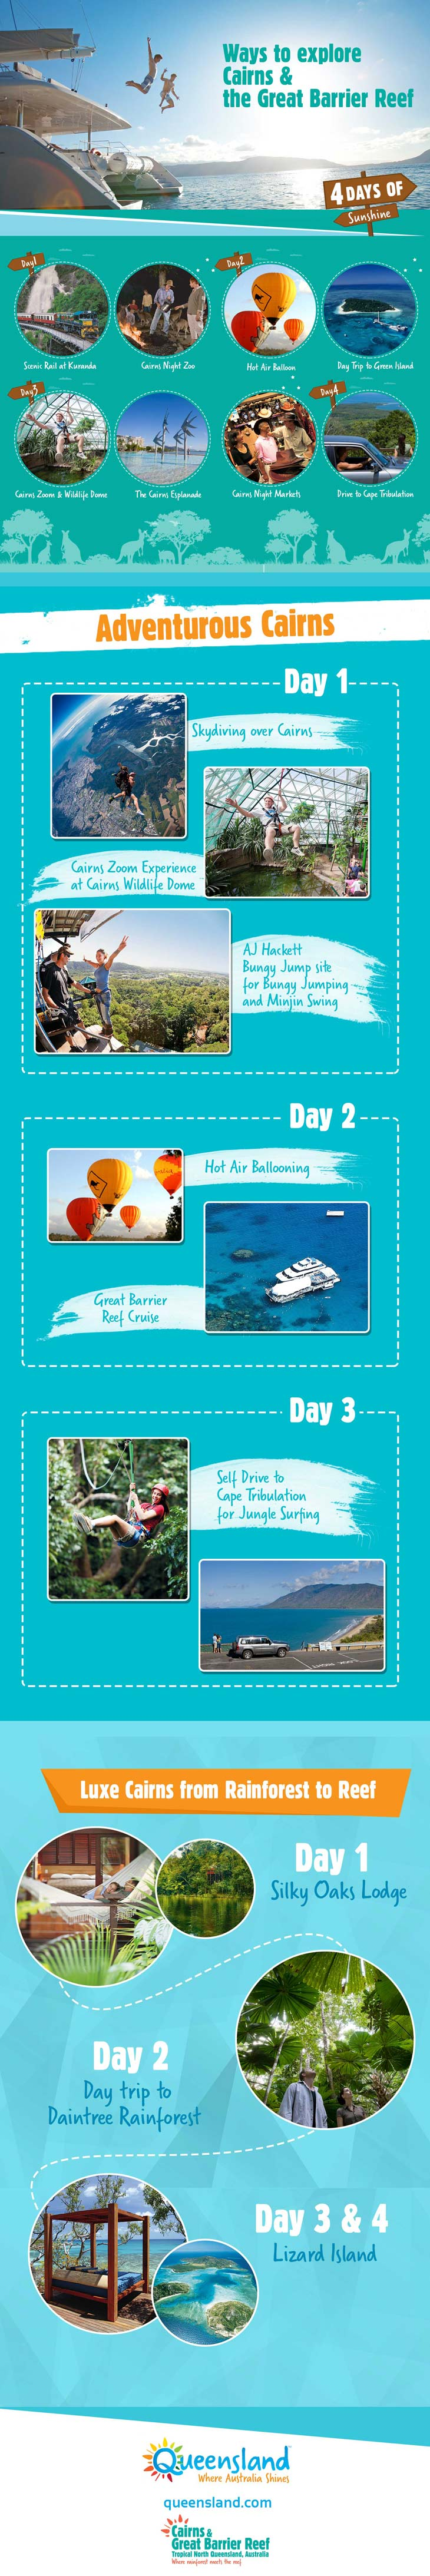 Cairns Itinerary